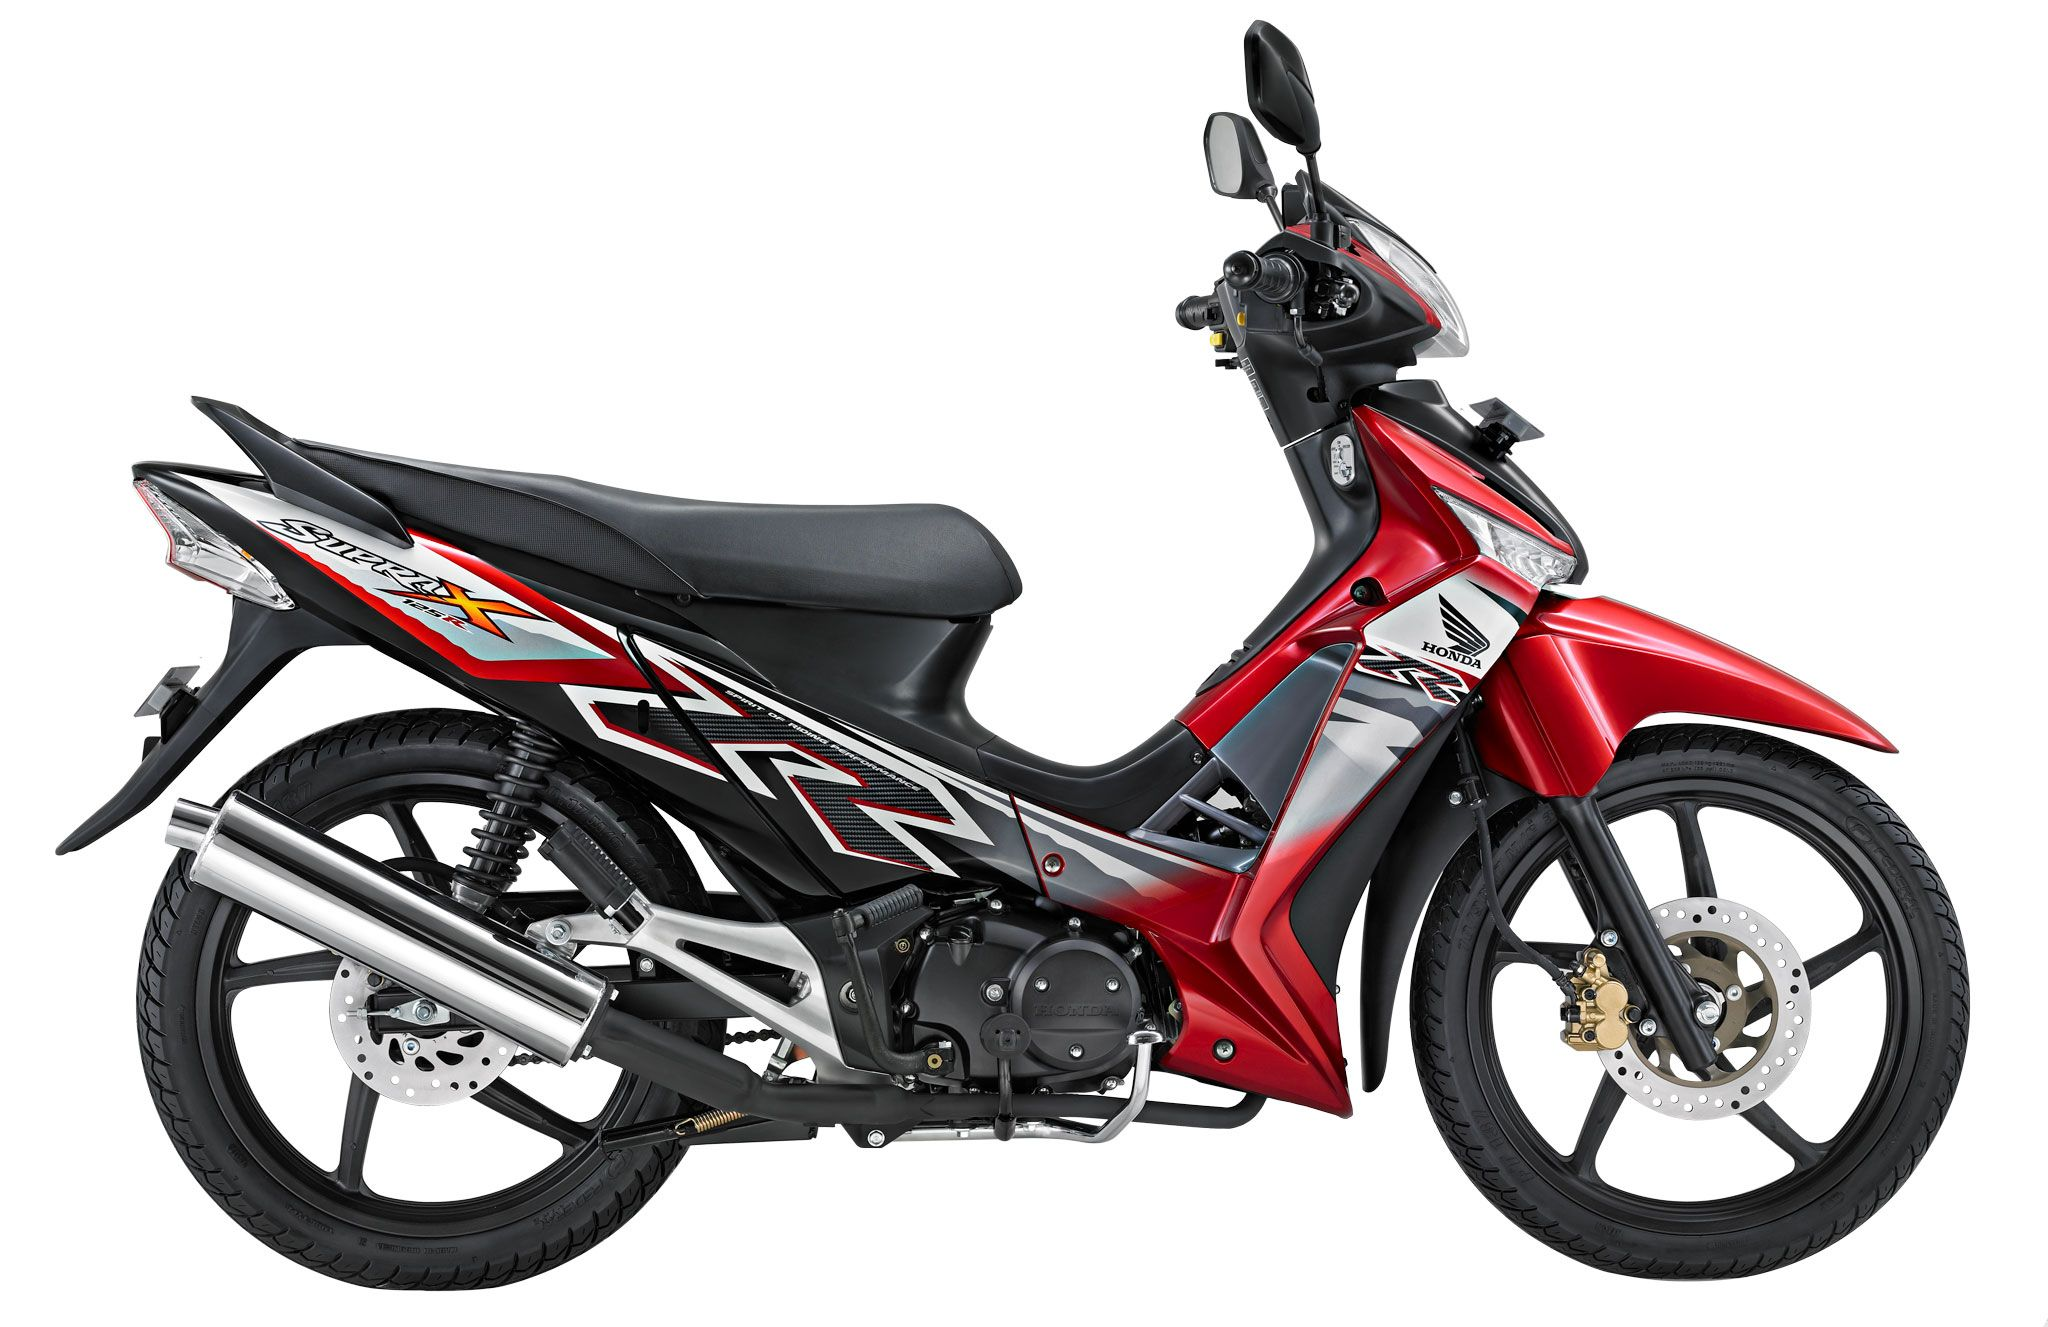 Supra X 125 Cw The Most Populat Motorcycle On Indonesia Motor Honda Mobil Keren